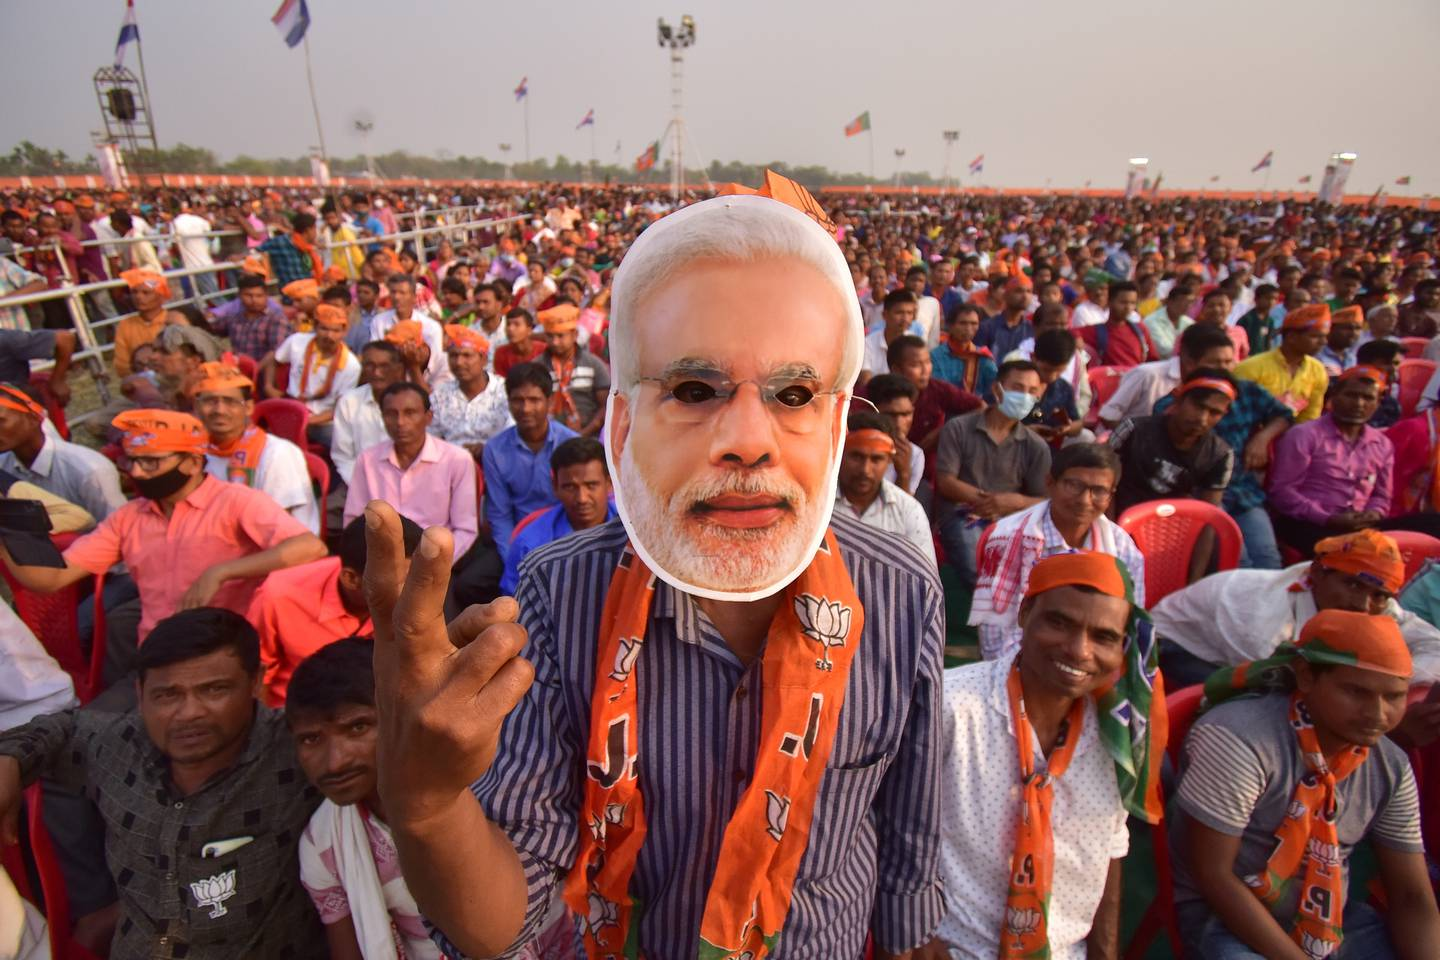 Critics say proponents of Hindutva have been emboldened by Indian Prime Minister Narendra Modi's Bharatiya Janata Party (BJP) government. Photo / Getty Images